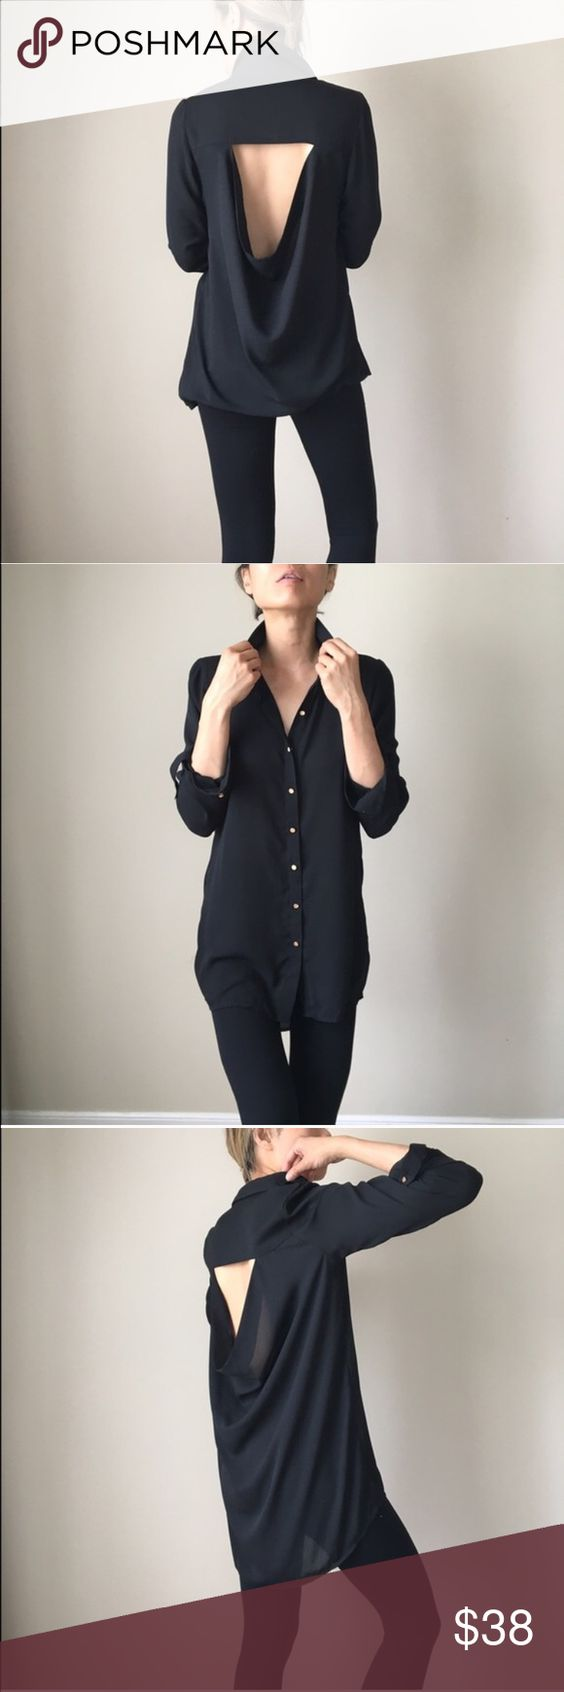 Midi sheer top tunic with open back Contemporary medium sheet tunic blouse top with open back. Gold plated stud buttons. Adjustable button sleeves . Classy simple n ultra chic Tops Blouses